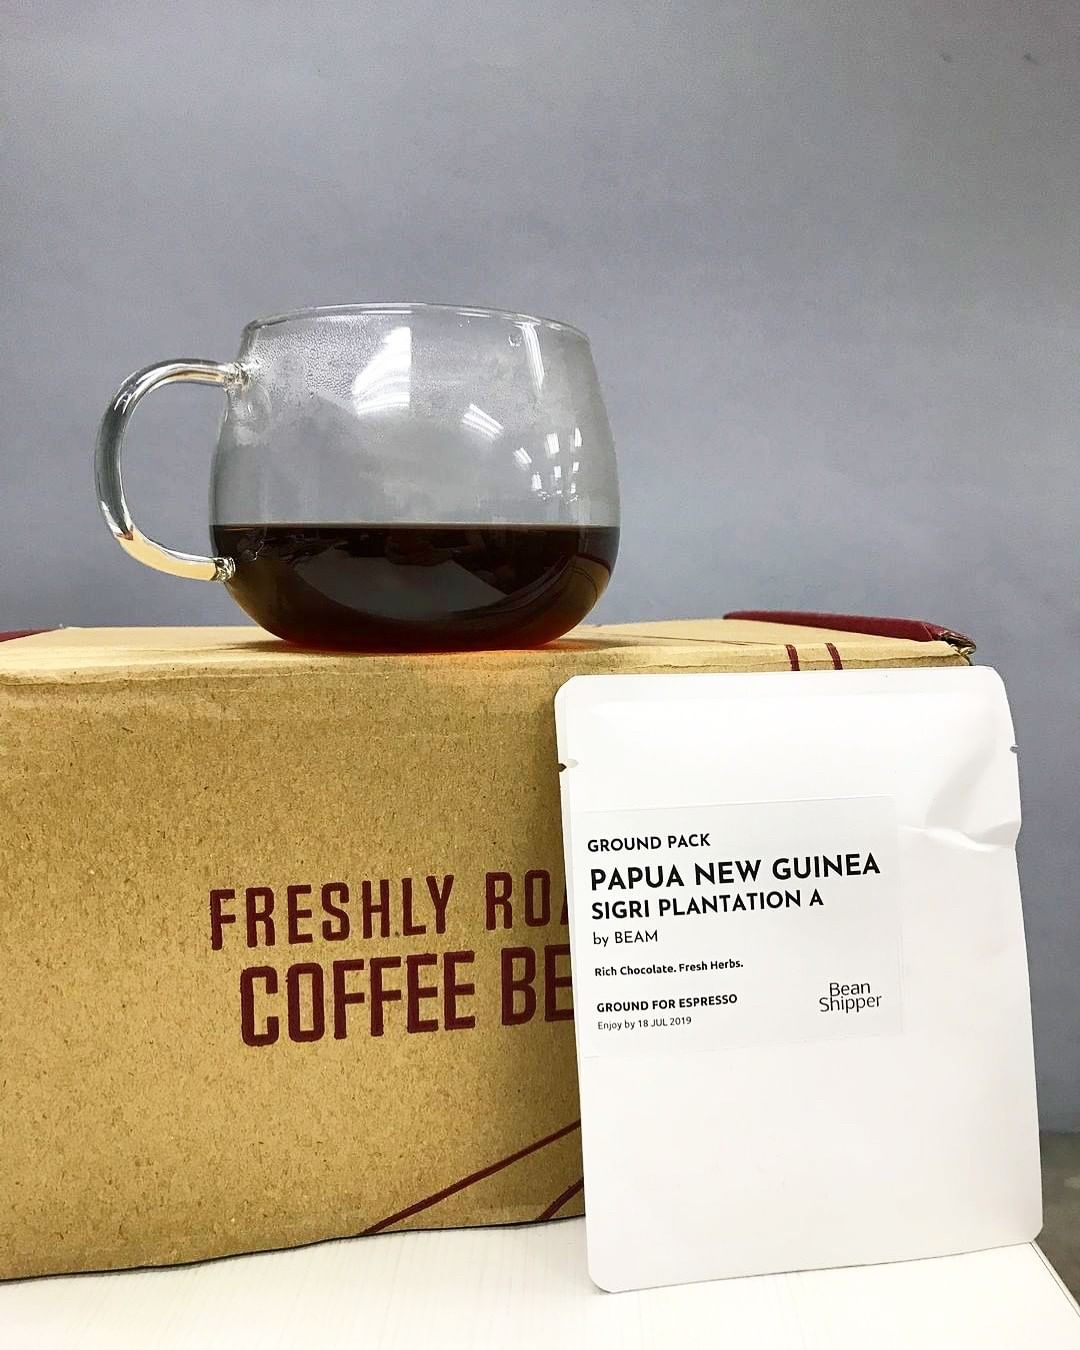 a cup of black coffee placed on a cardboard box with a bag of coffee beans lying on it